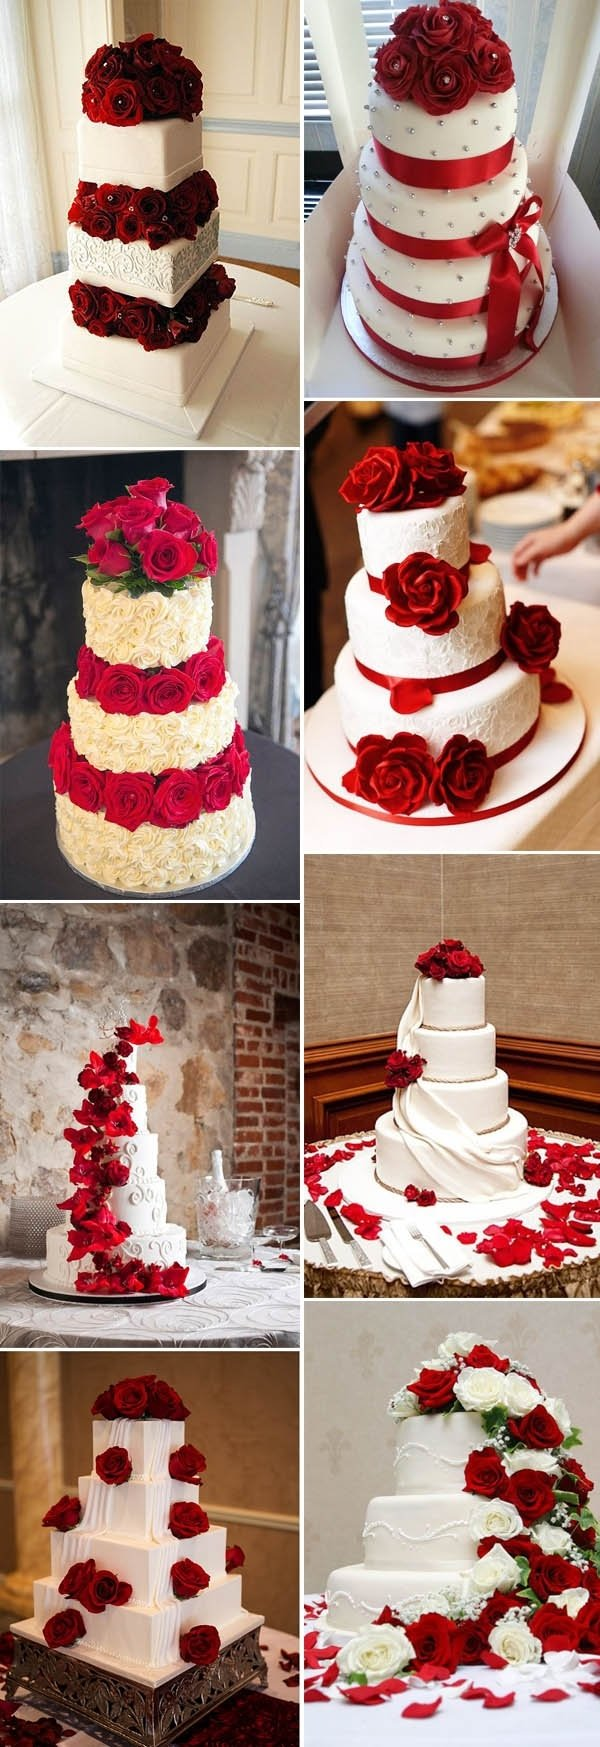 10 Spectacular Red And White Wedding Ideas 40 inspirational classic red and white wedding ideas 2020